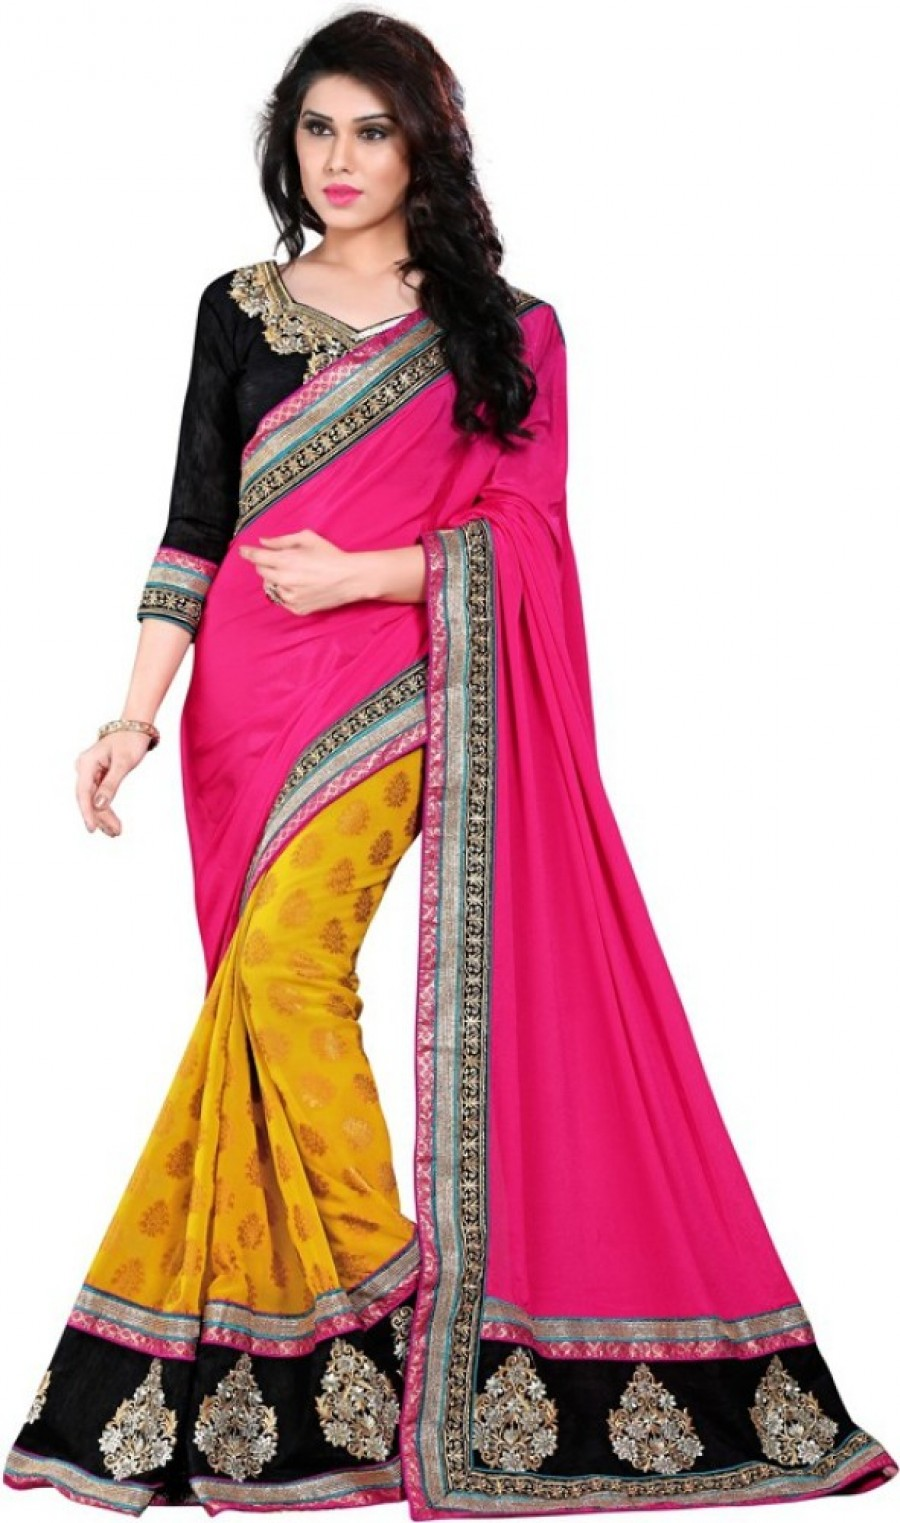 Buy Party Wear Dresses Embriodered Fashion Viscose Sari Online